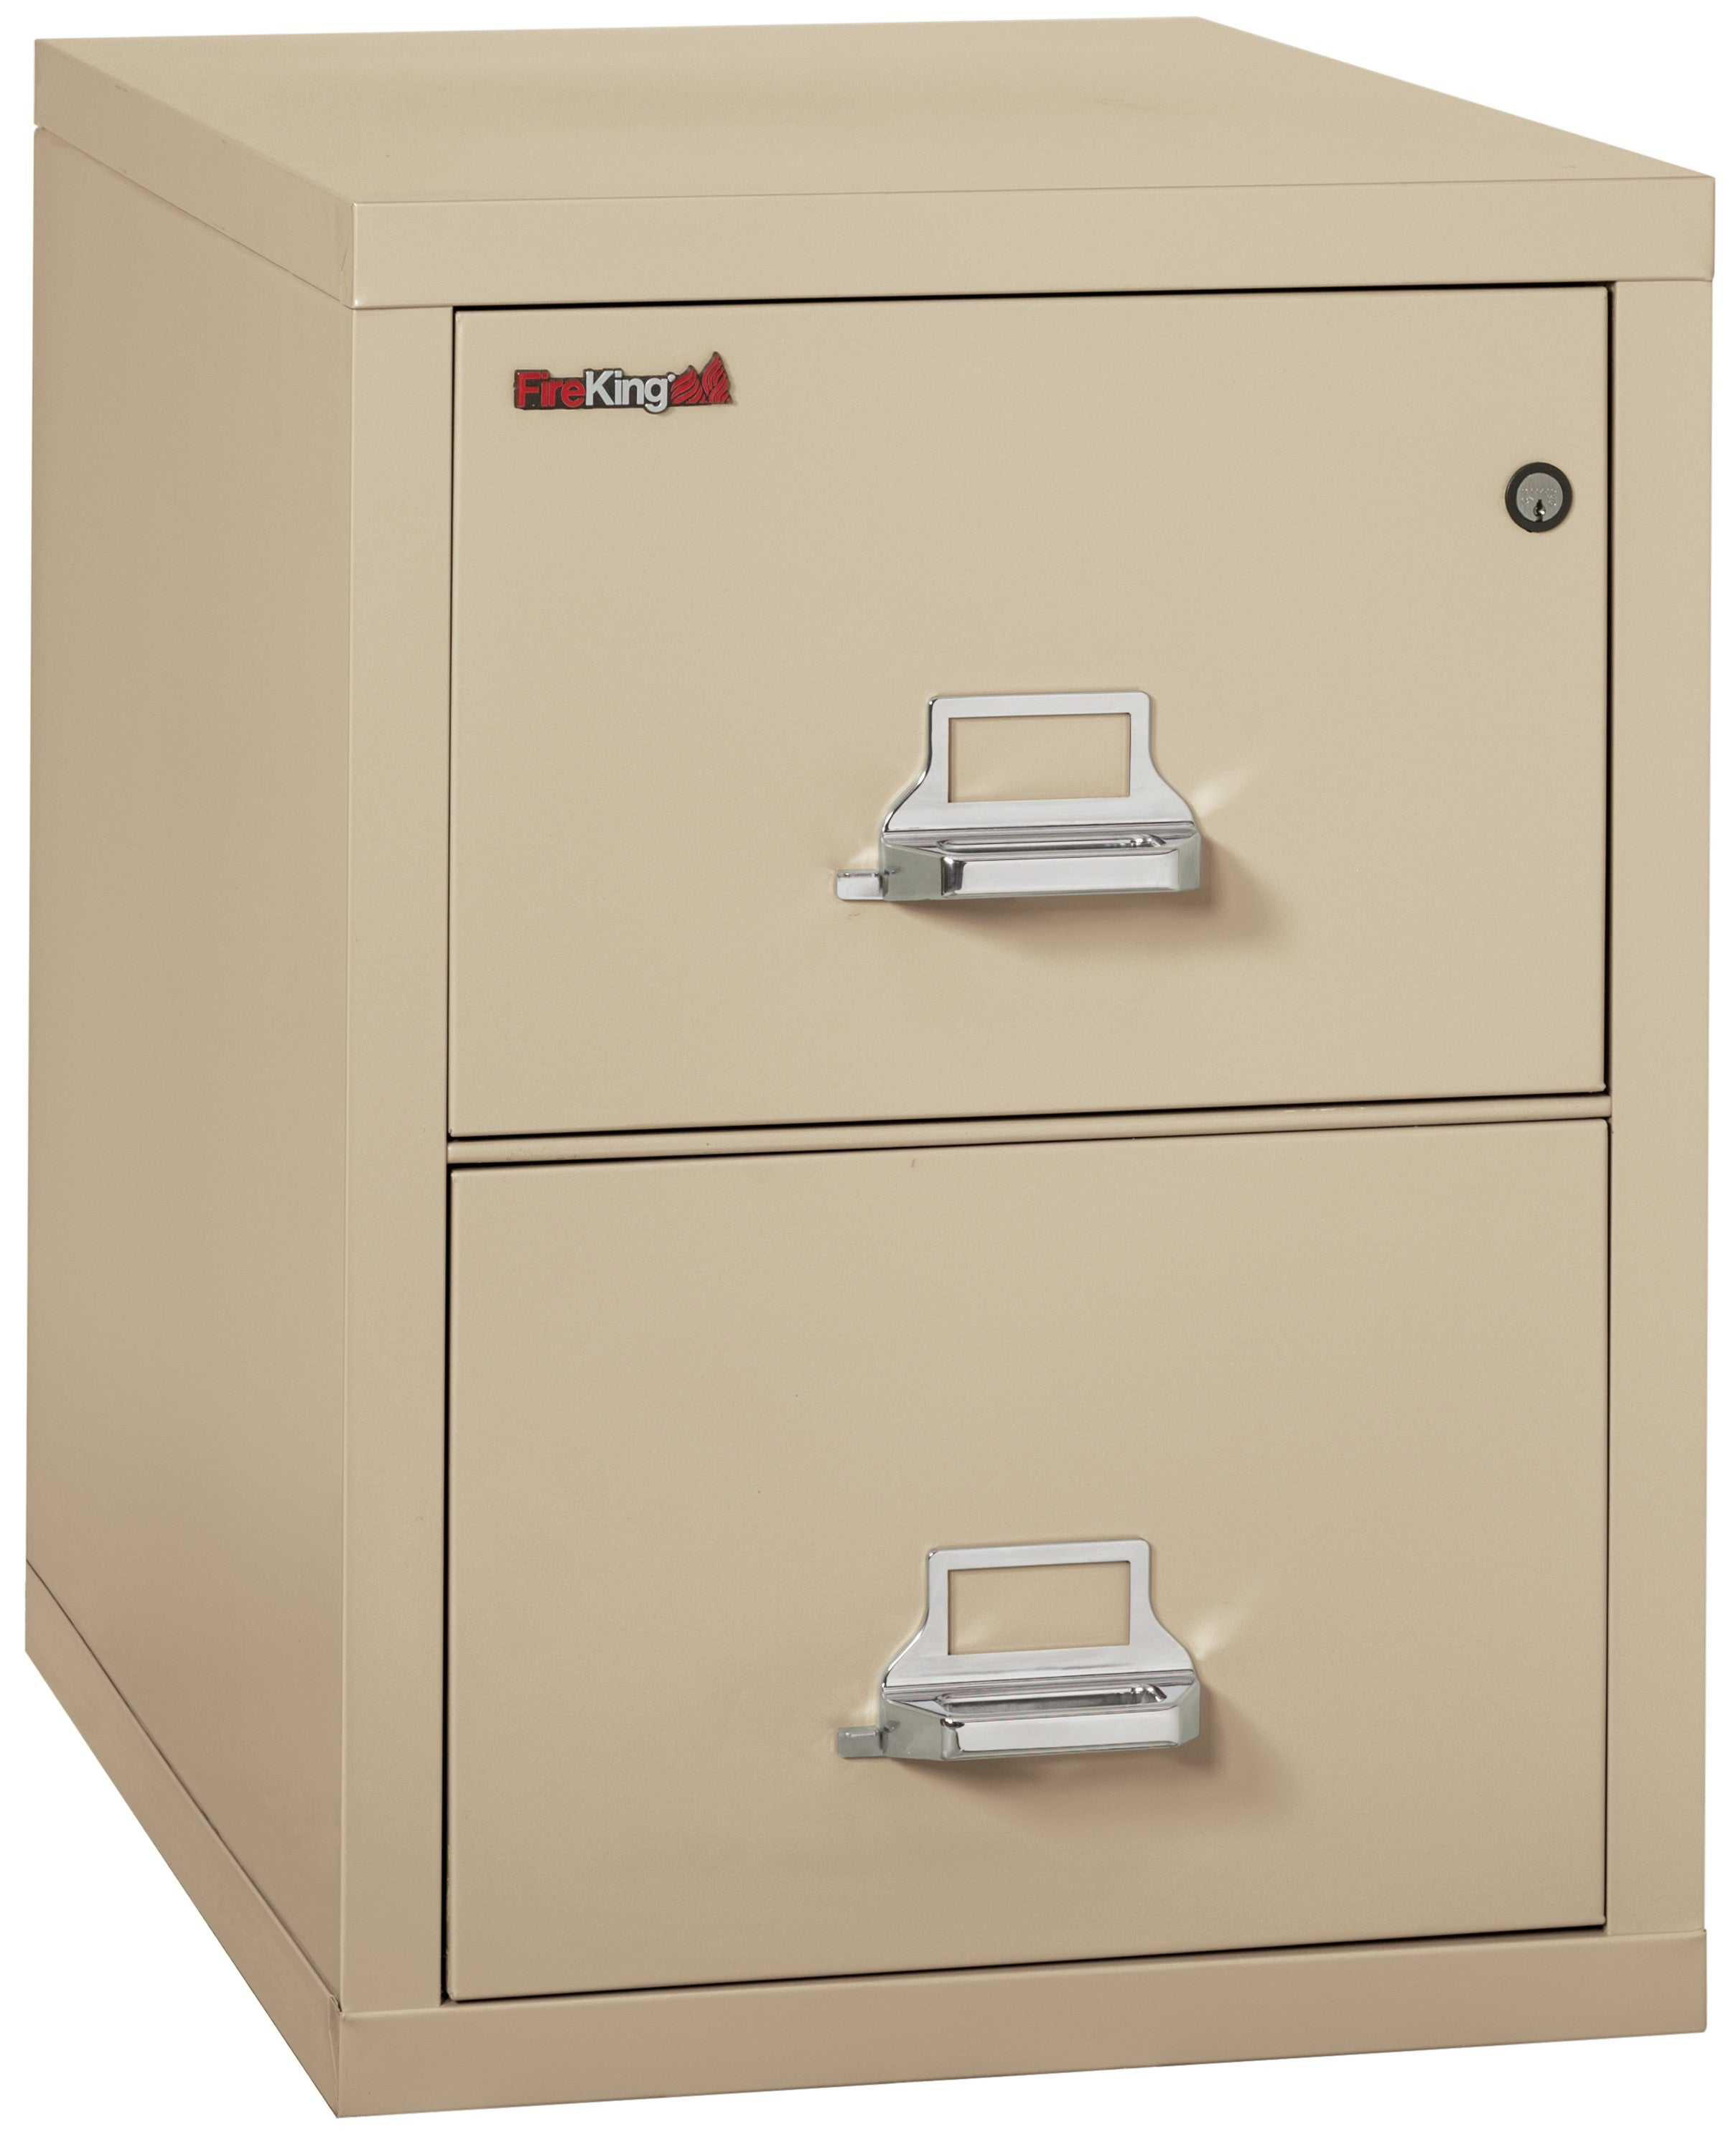 "Fireking 2 Drawer Legal 31"" D Classic Vertical File Cabinet"